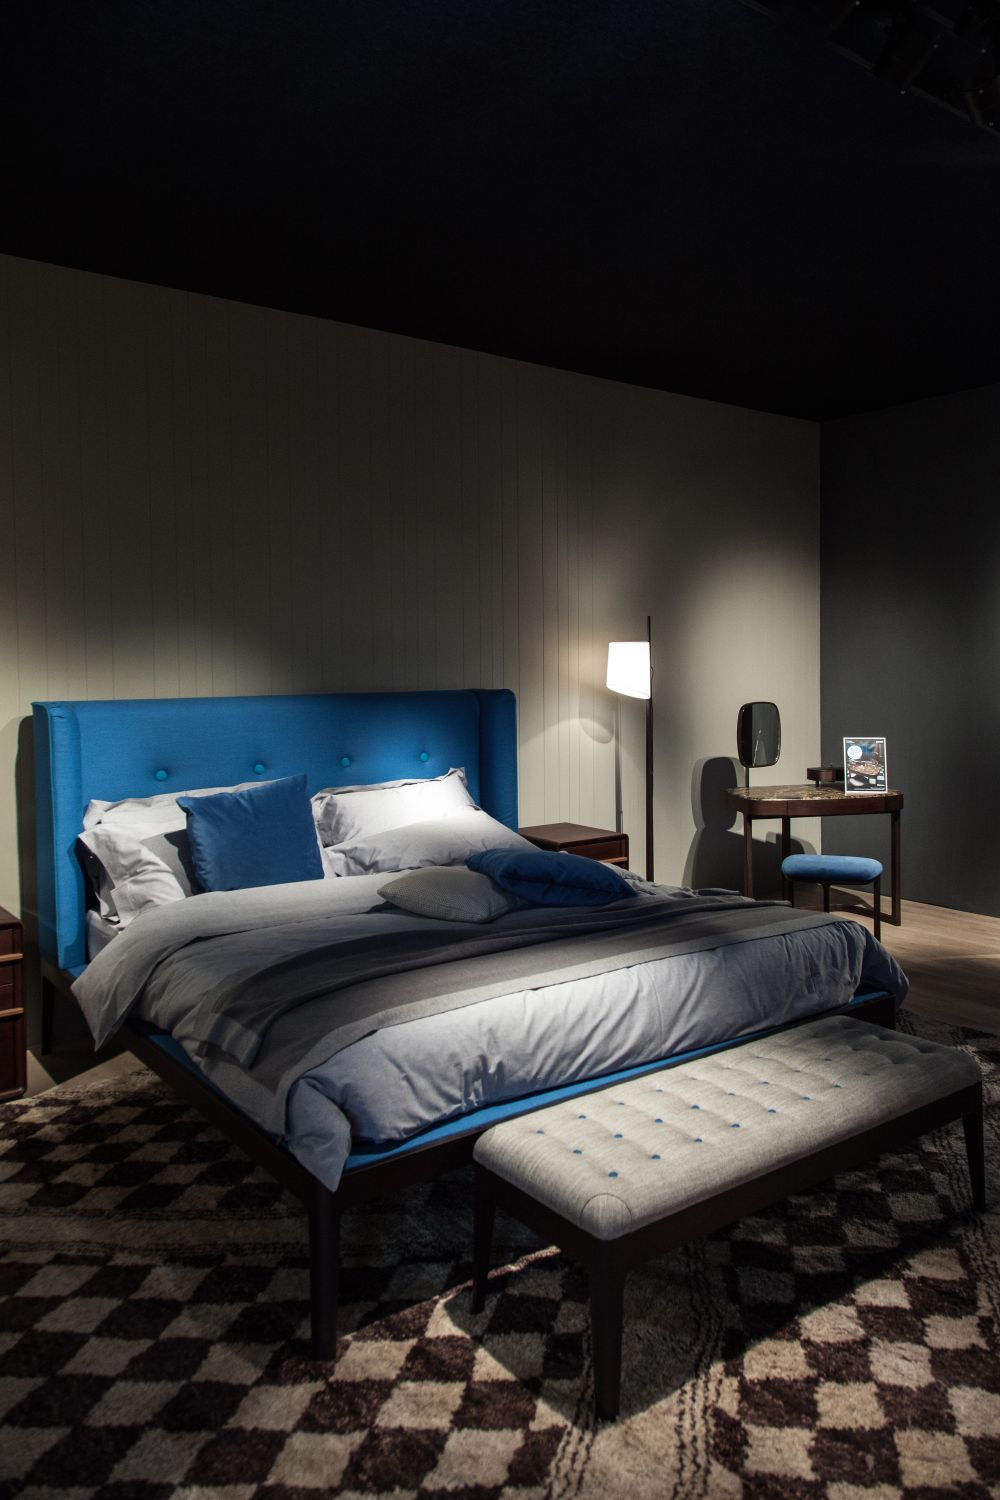 Gray is an excellent main color for a bedroom, despite its very neutral and cool nature